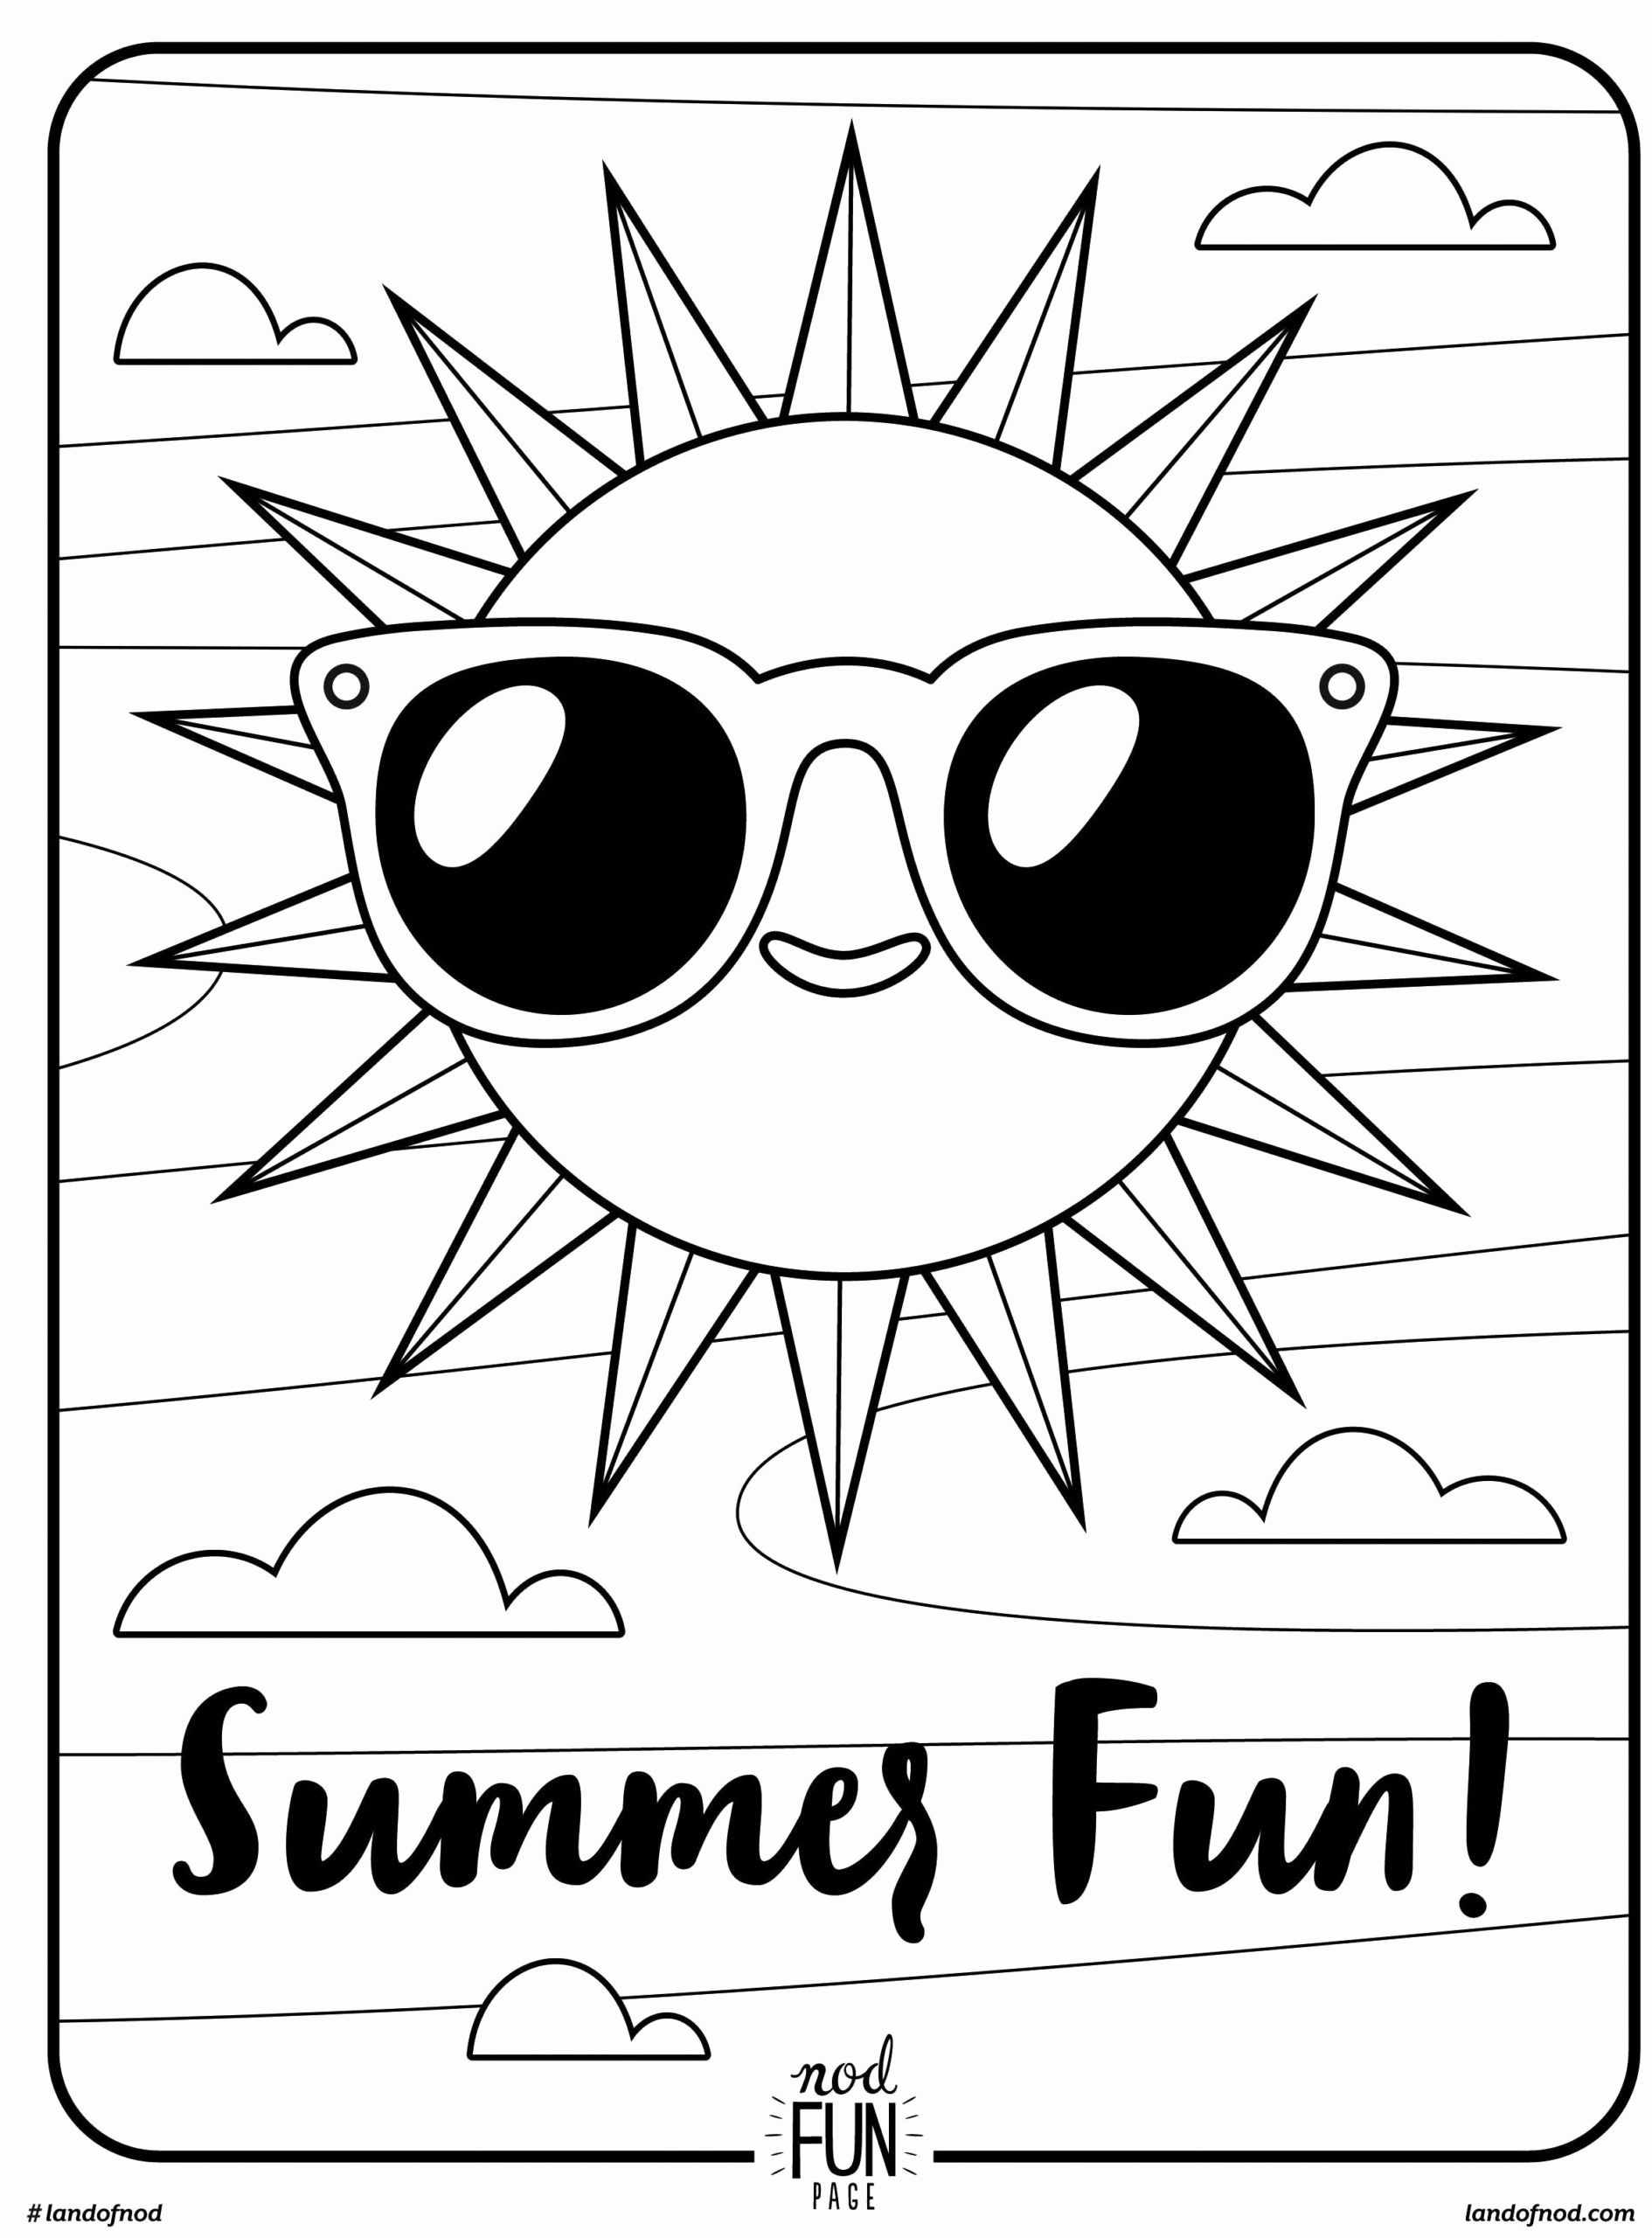 Pin On Summer Coloring Pages For Kids